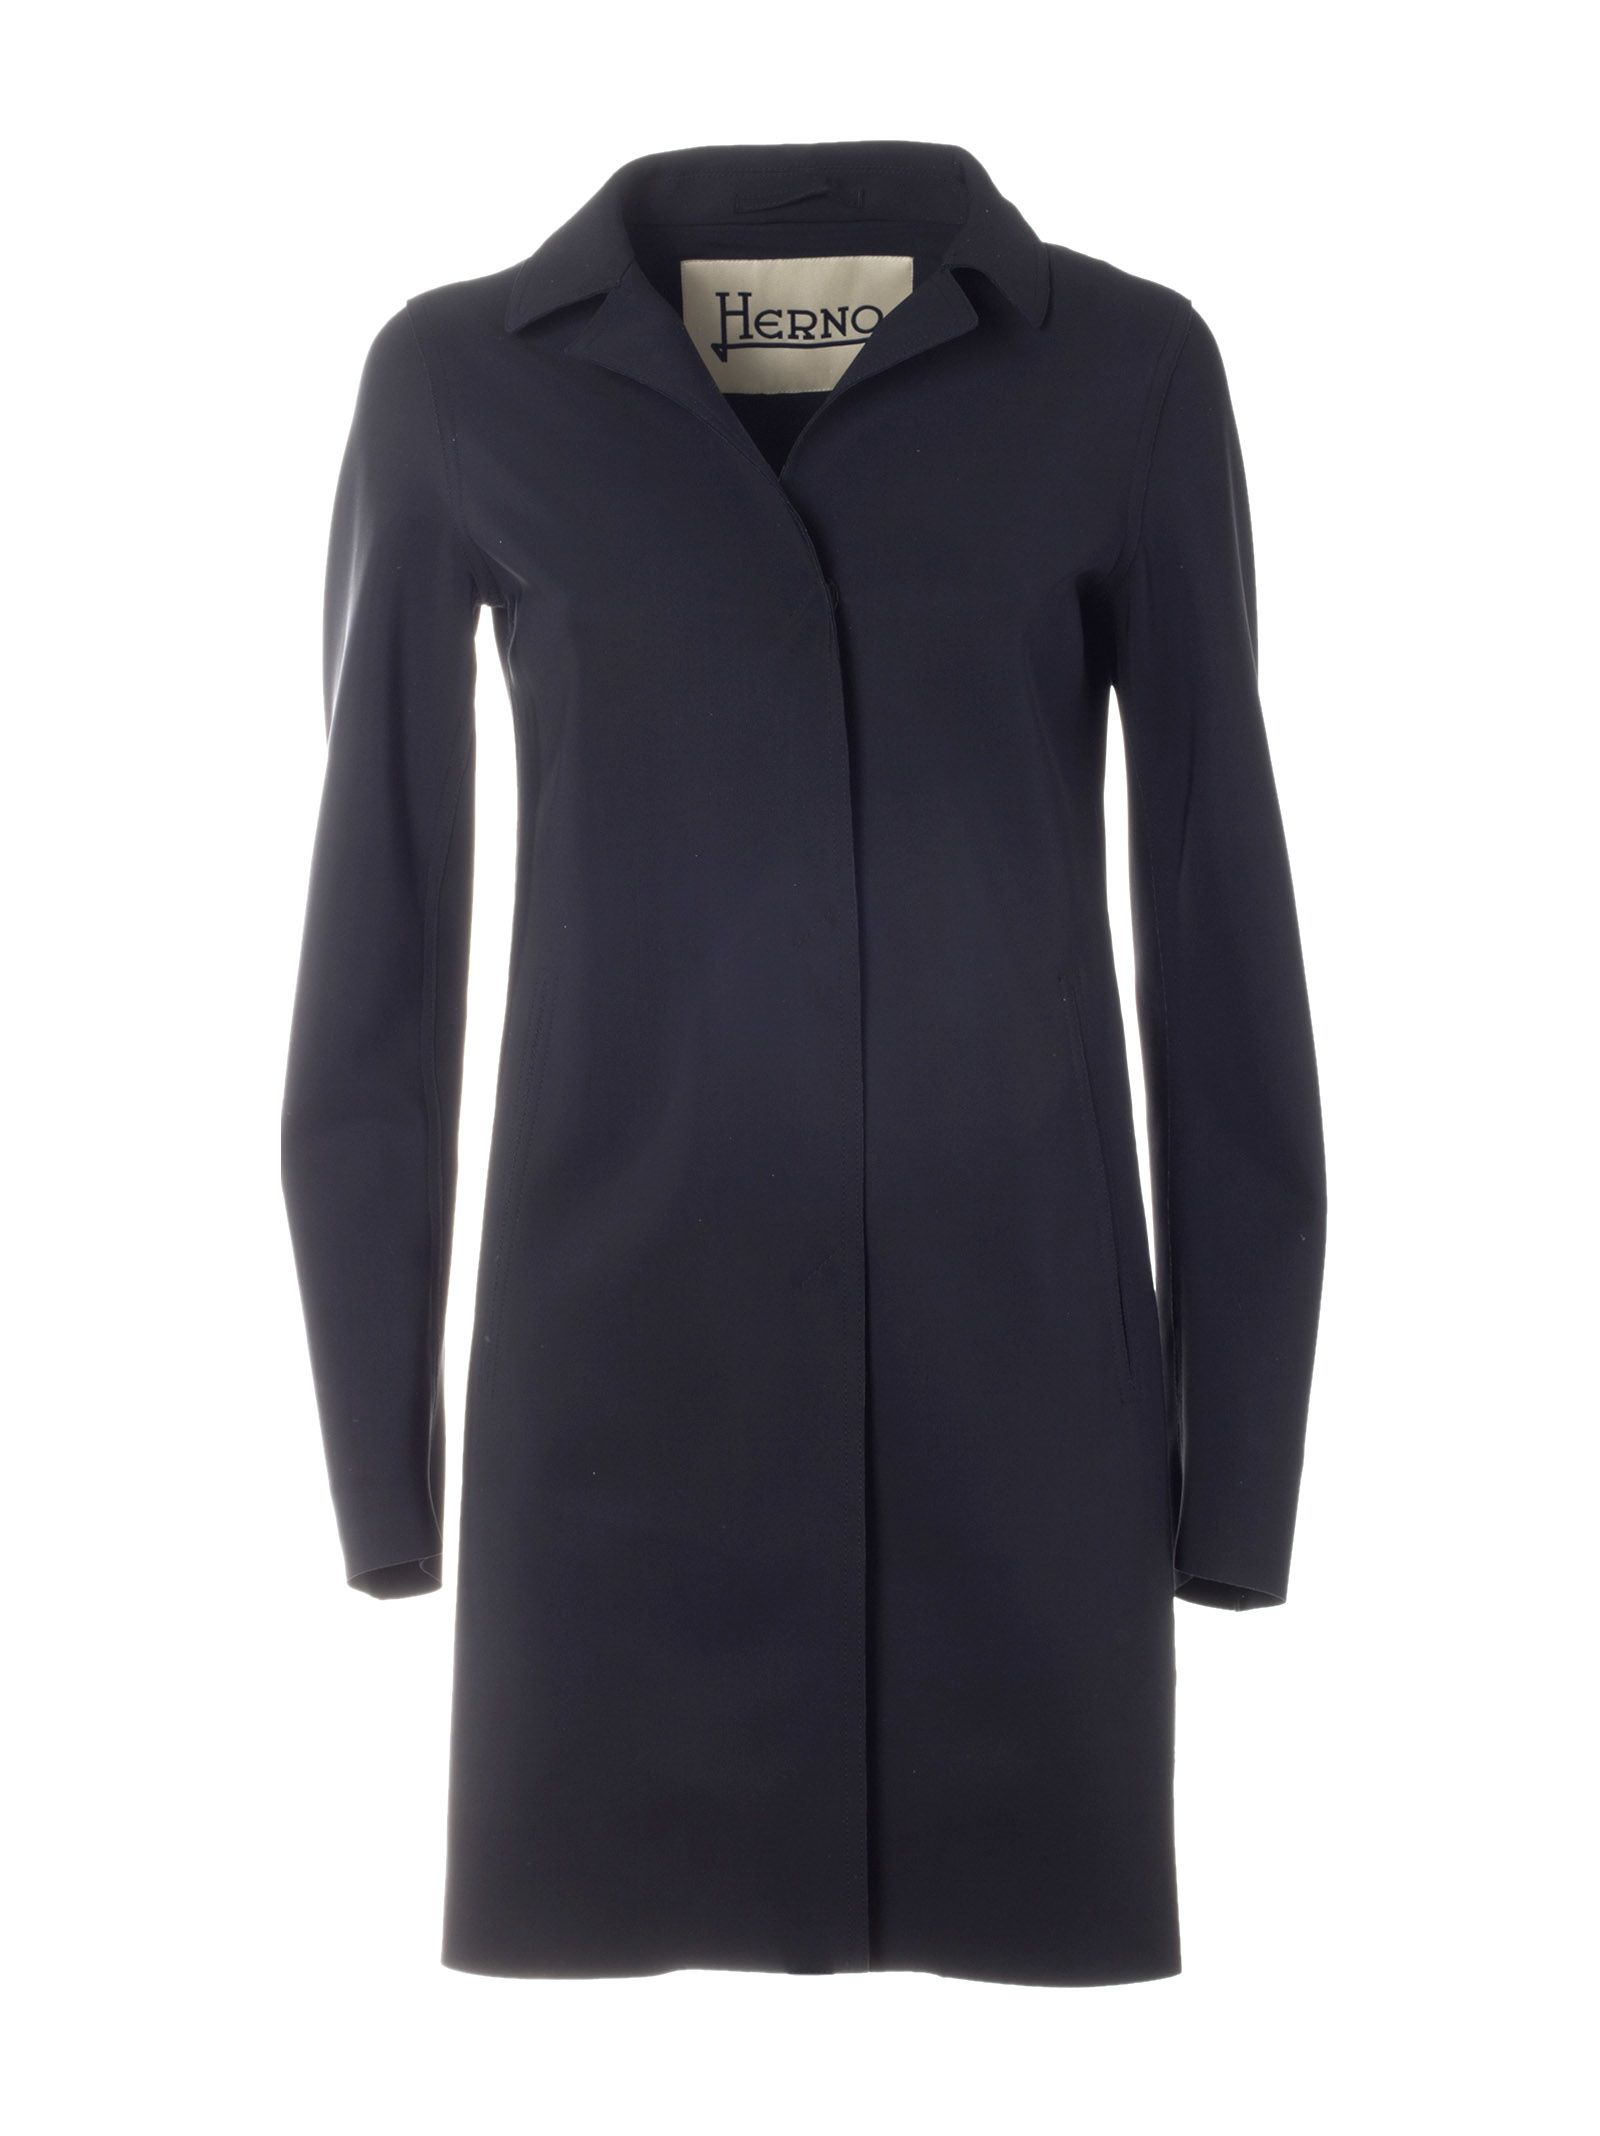 coats christian single women Make dillard's your women's coats and jackets destination find the lastest women's outerwear from parkas, anoraks, and more at dillards.